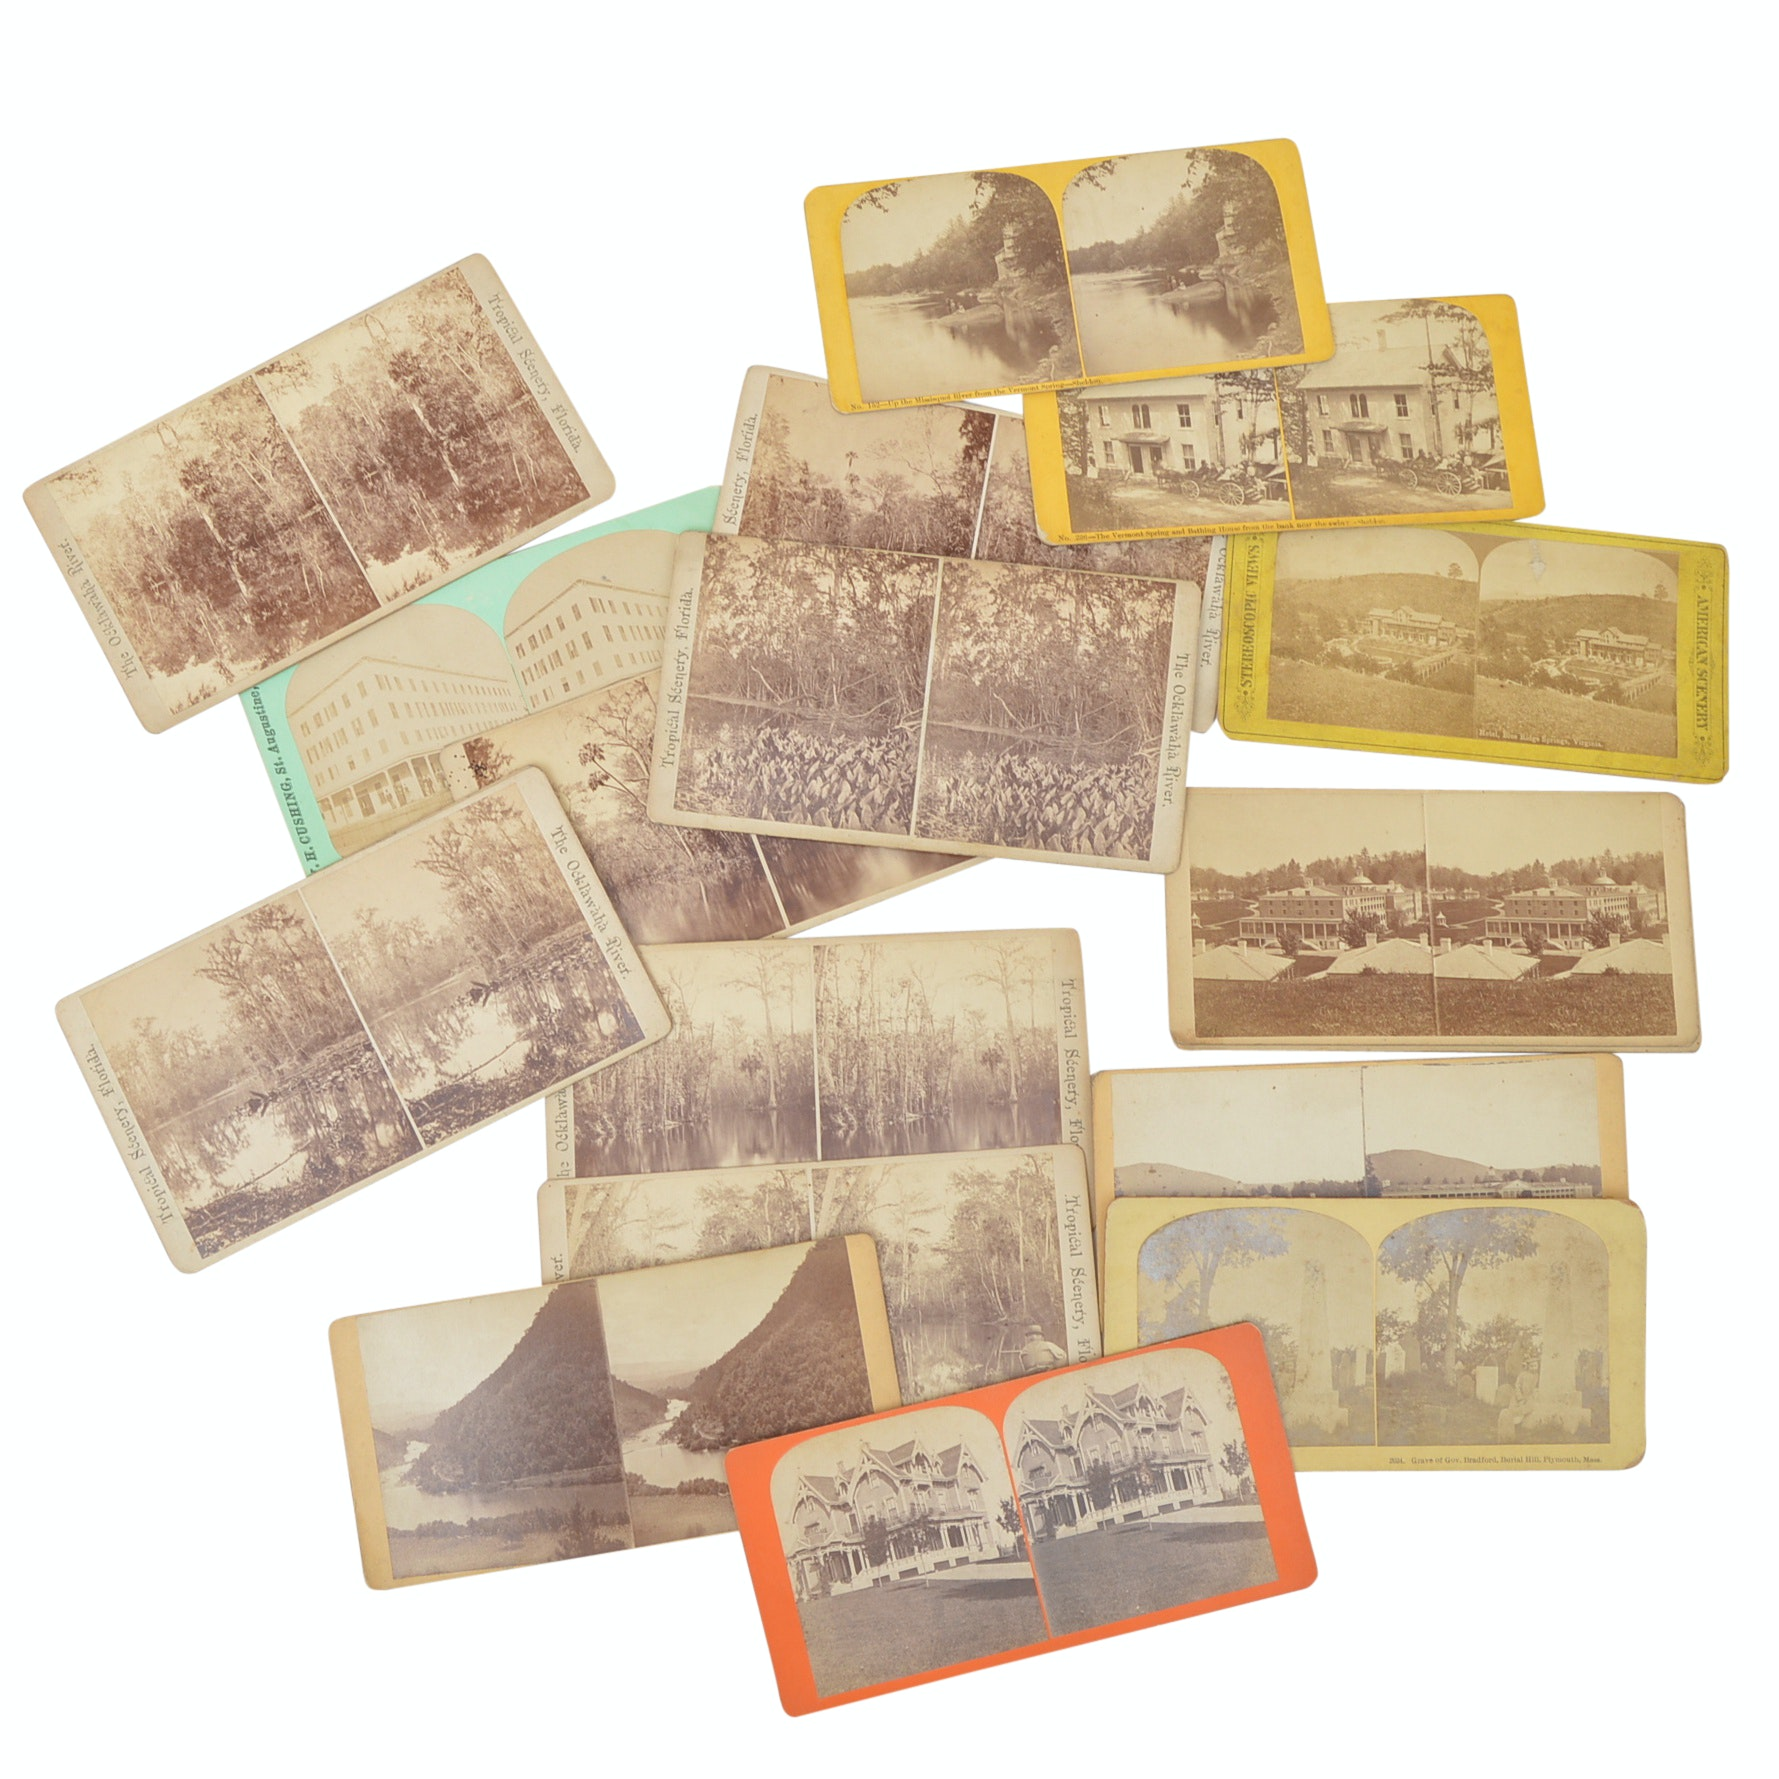 19 Early 20th Century Stereoscopic Cards with Florida Landscapes, Greenbrier